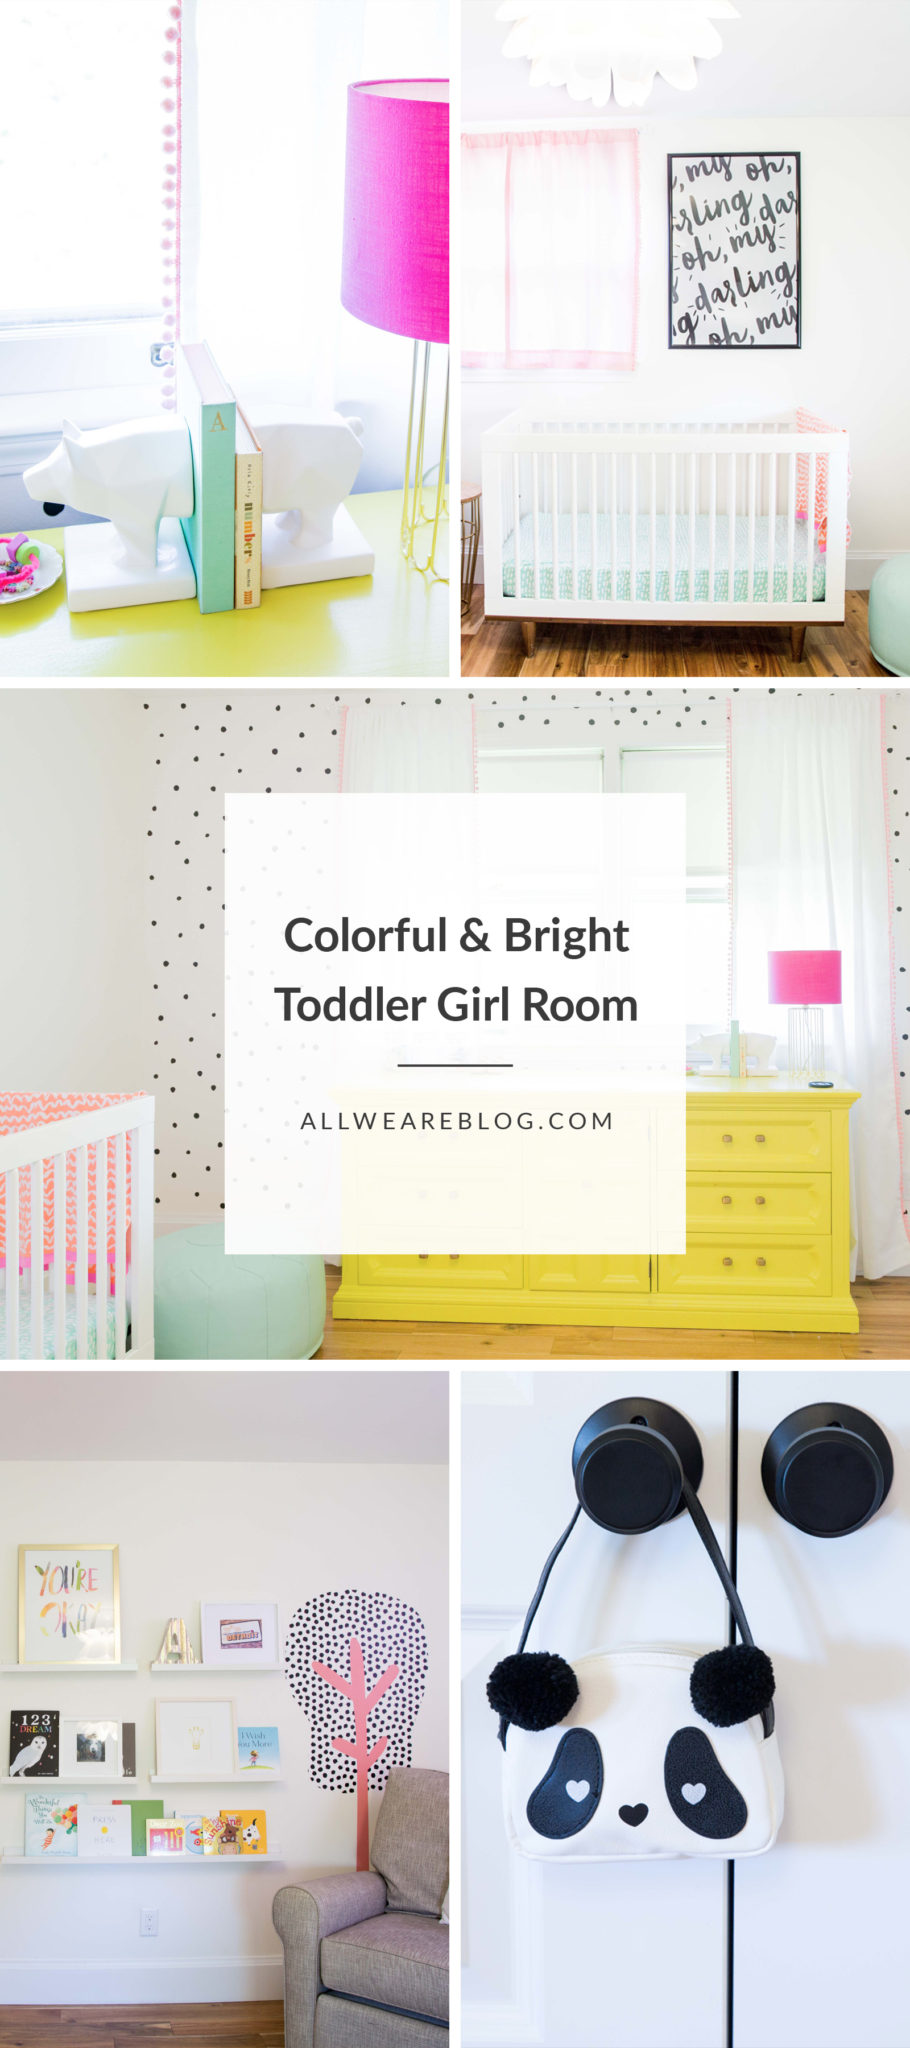 Annabelle's Bedroom Reveal | nursery decor tips | how to decorate for baby | nursery room decor ideas | girl nursery decor | DIY nursery decor | feminine nursery decor ideas | tips for decorating the nursery || All We Are Blog